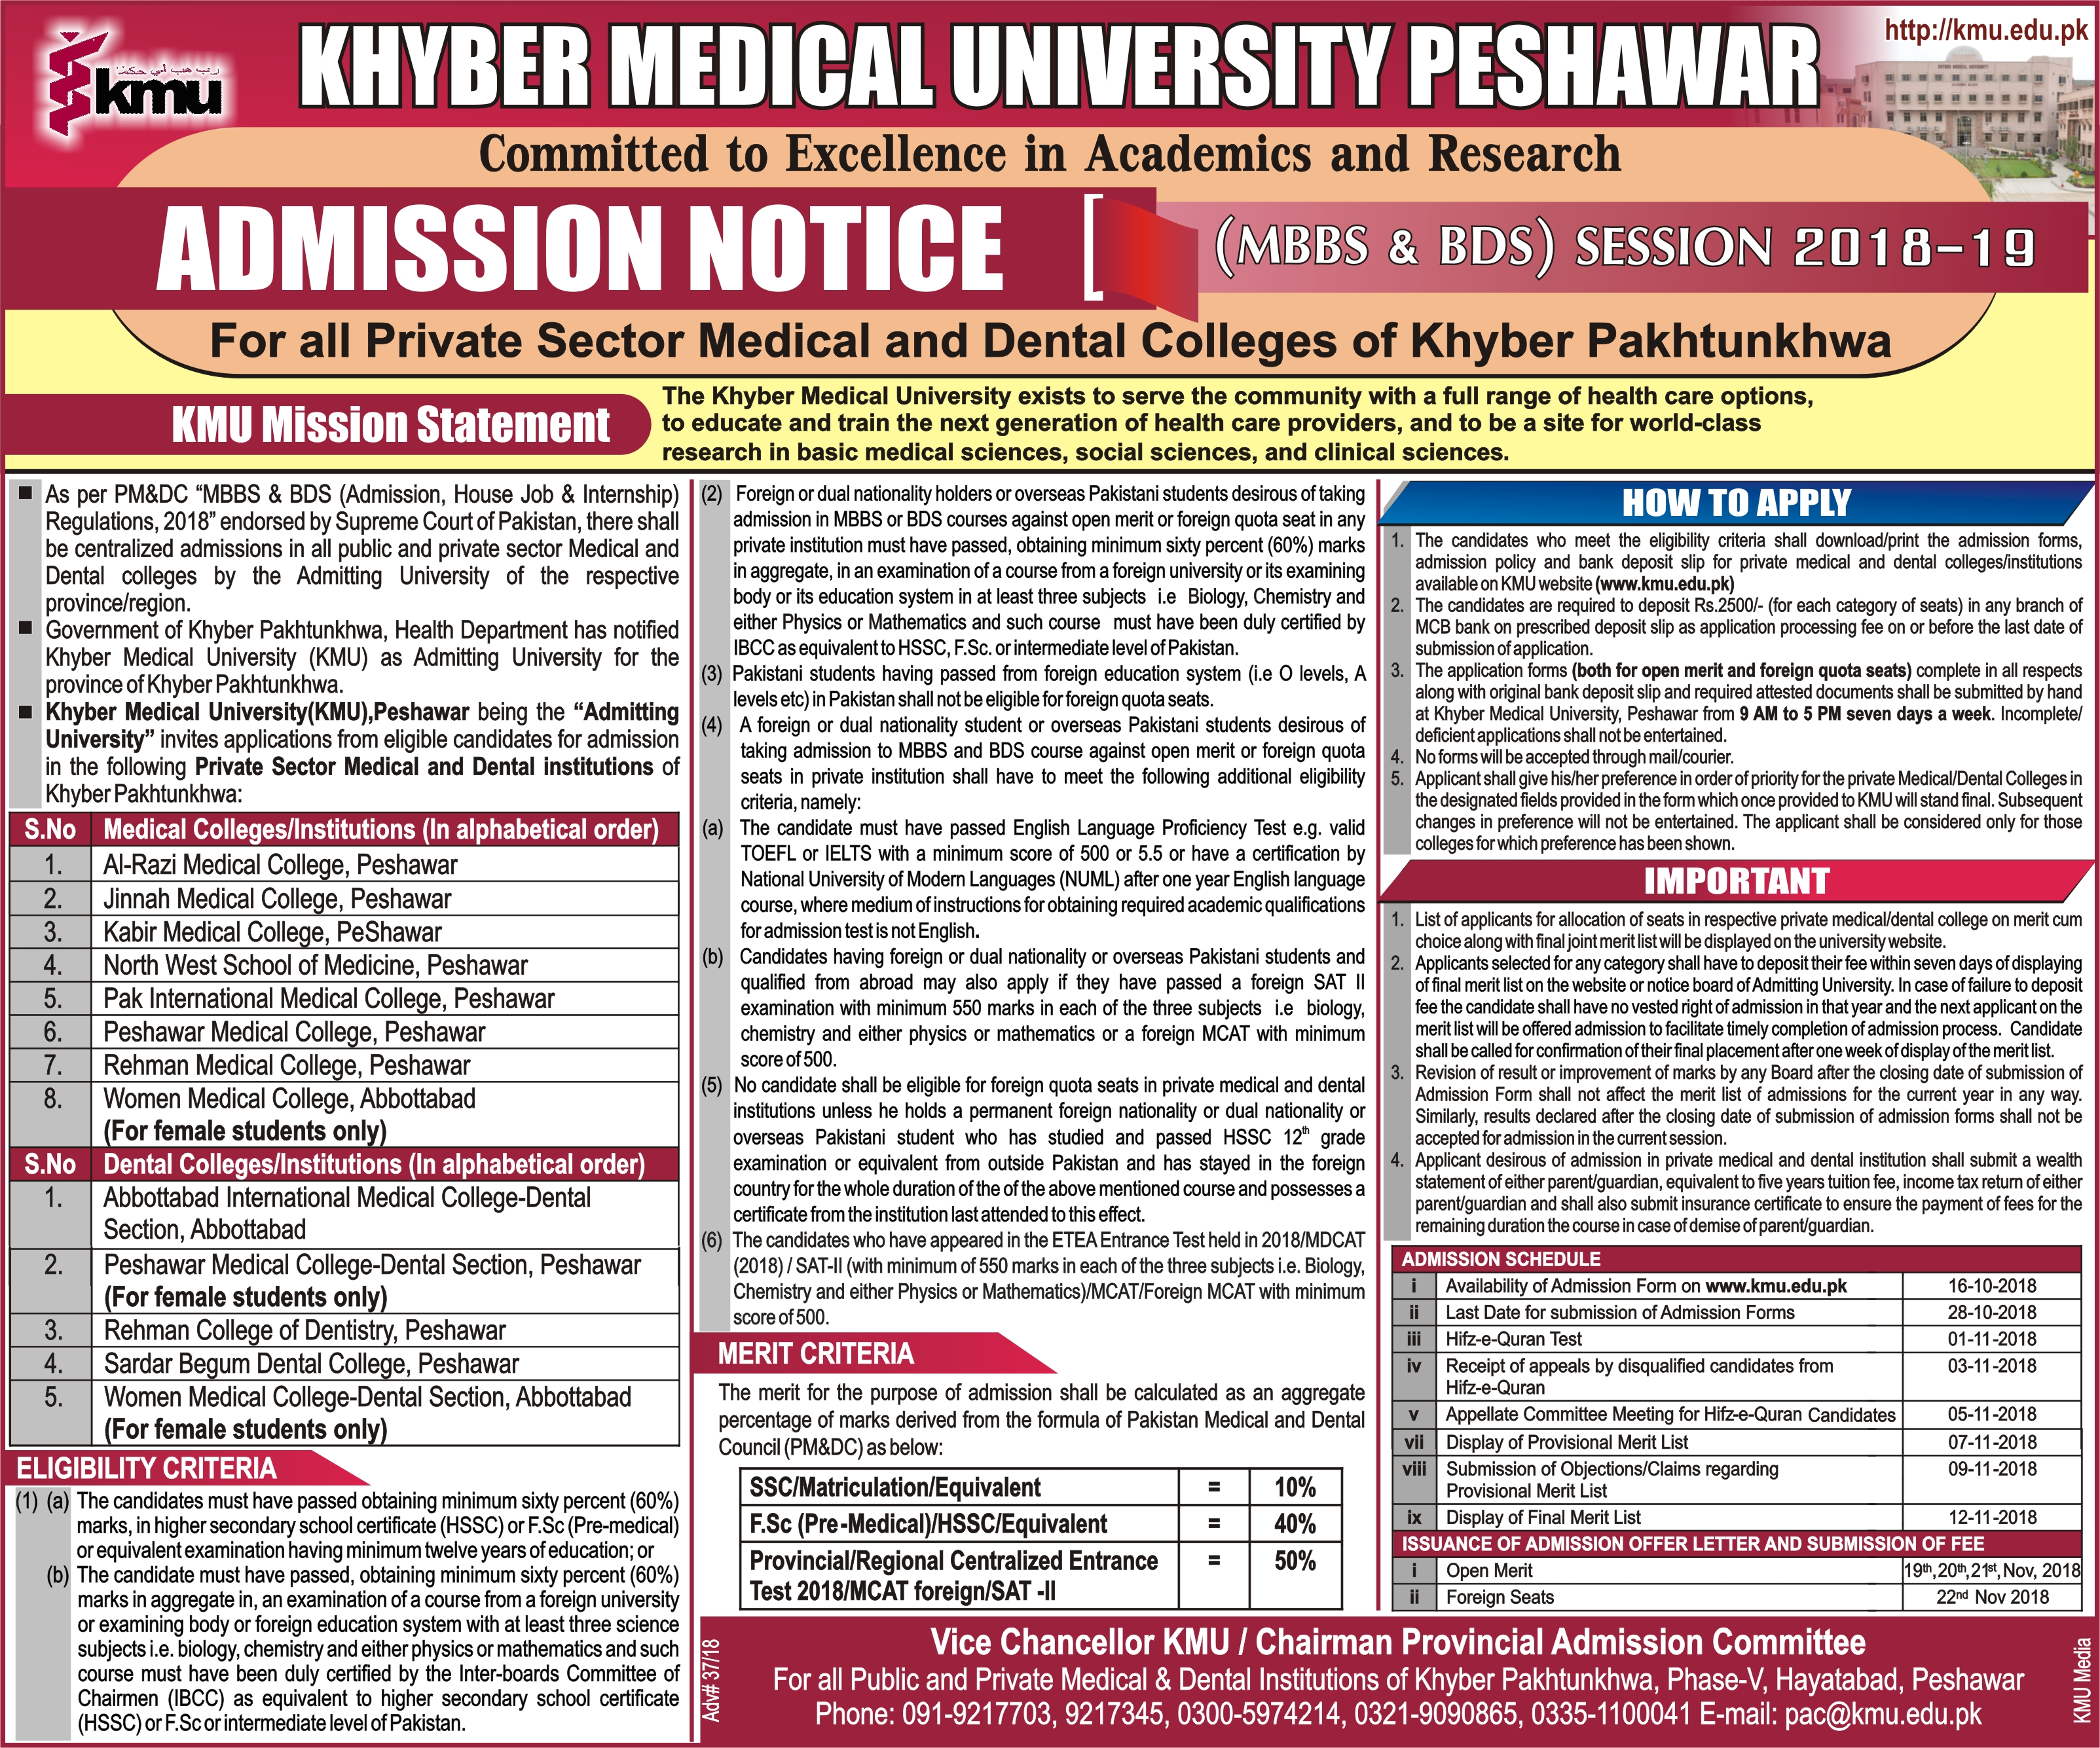 Khyber Medical University Peshawar MBBS & BDS Admissions 2018-19